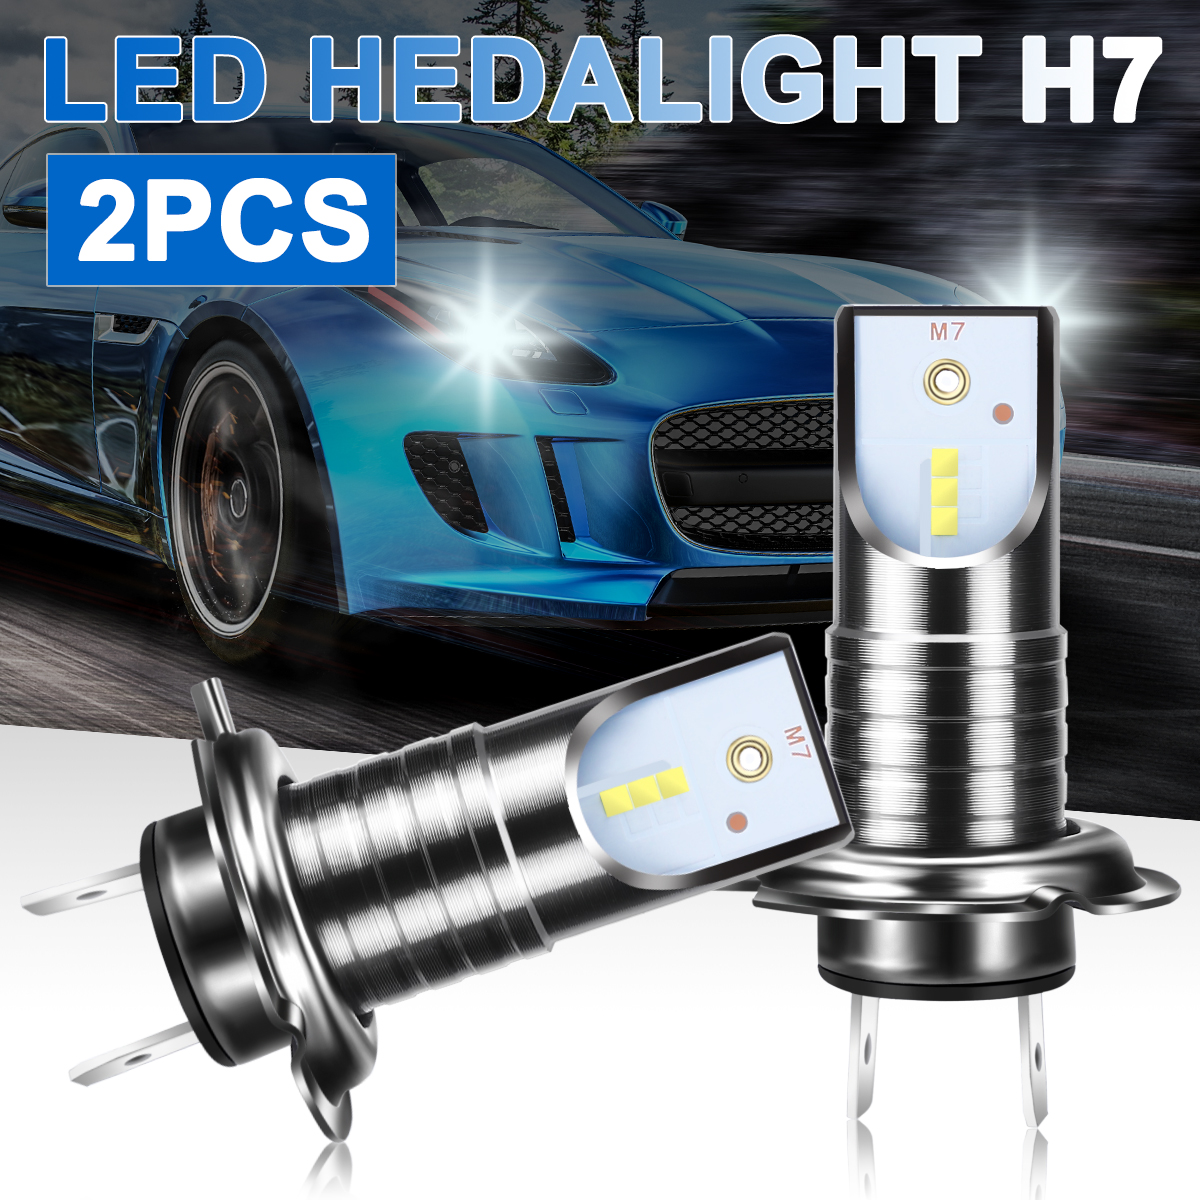 For BMW For Audi For Kia 2Pcs H7 LED Headlight 55W 13000LM 6000K LED Car Headlight Conversion Kit Canbus Error Free Bulb White